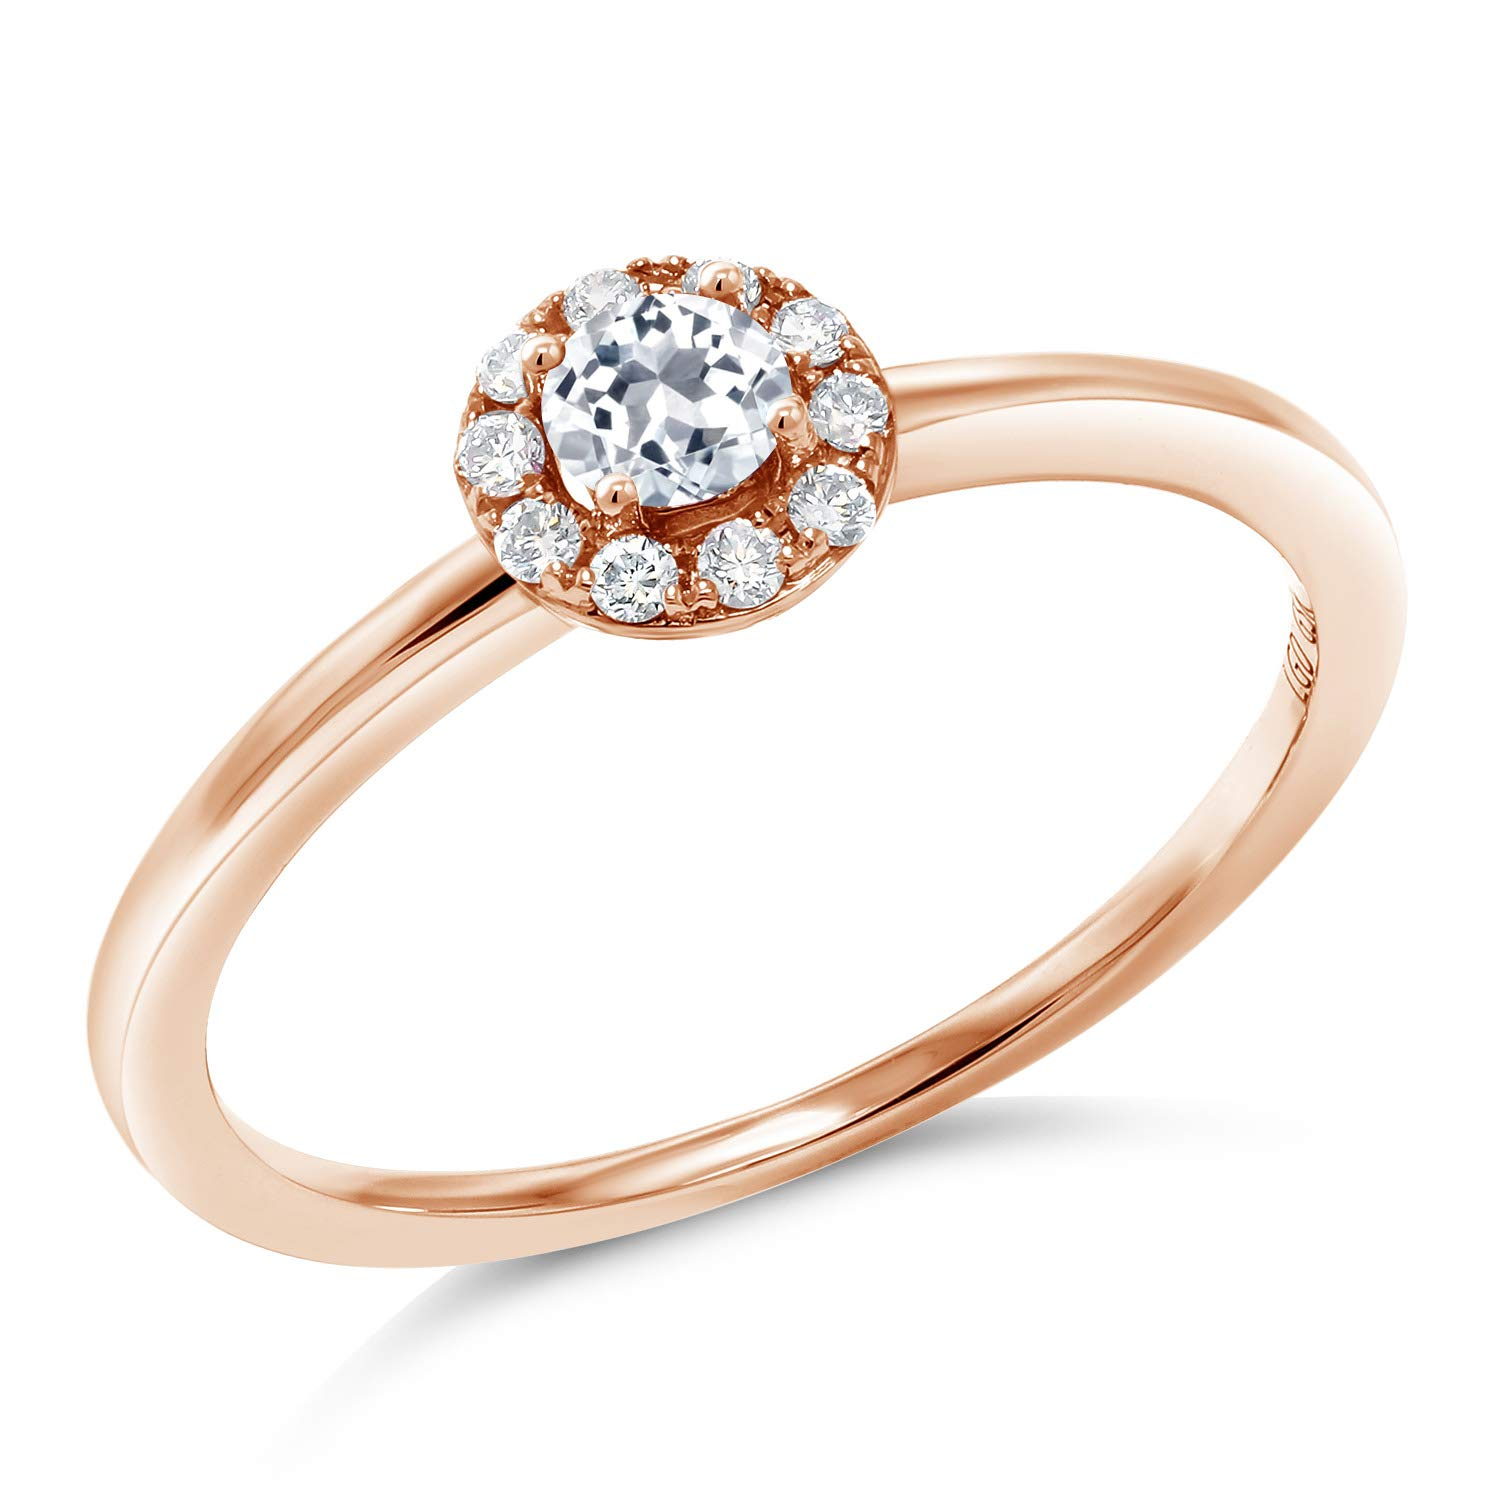 Gem Stone King 10K Rose Gold White Topaz and Lab Grown Diamond Women's Engagement Ring (0.27 Ct Round, G-H Color, Available in size 5, 6, 7, 8, 9) by Gem Stone King